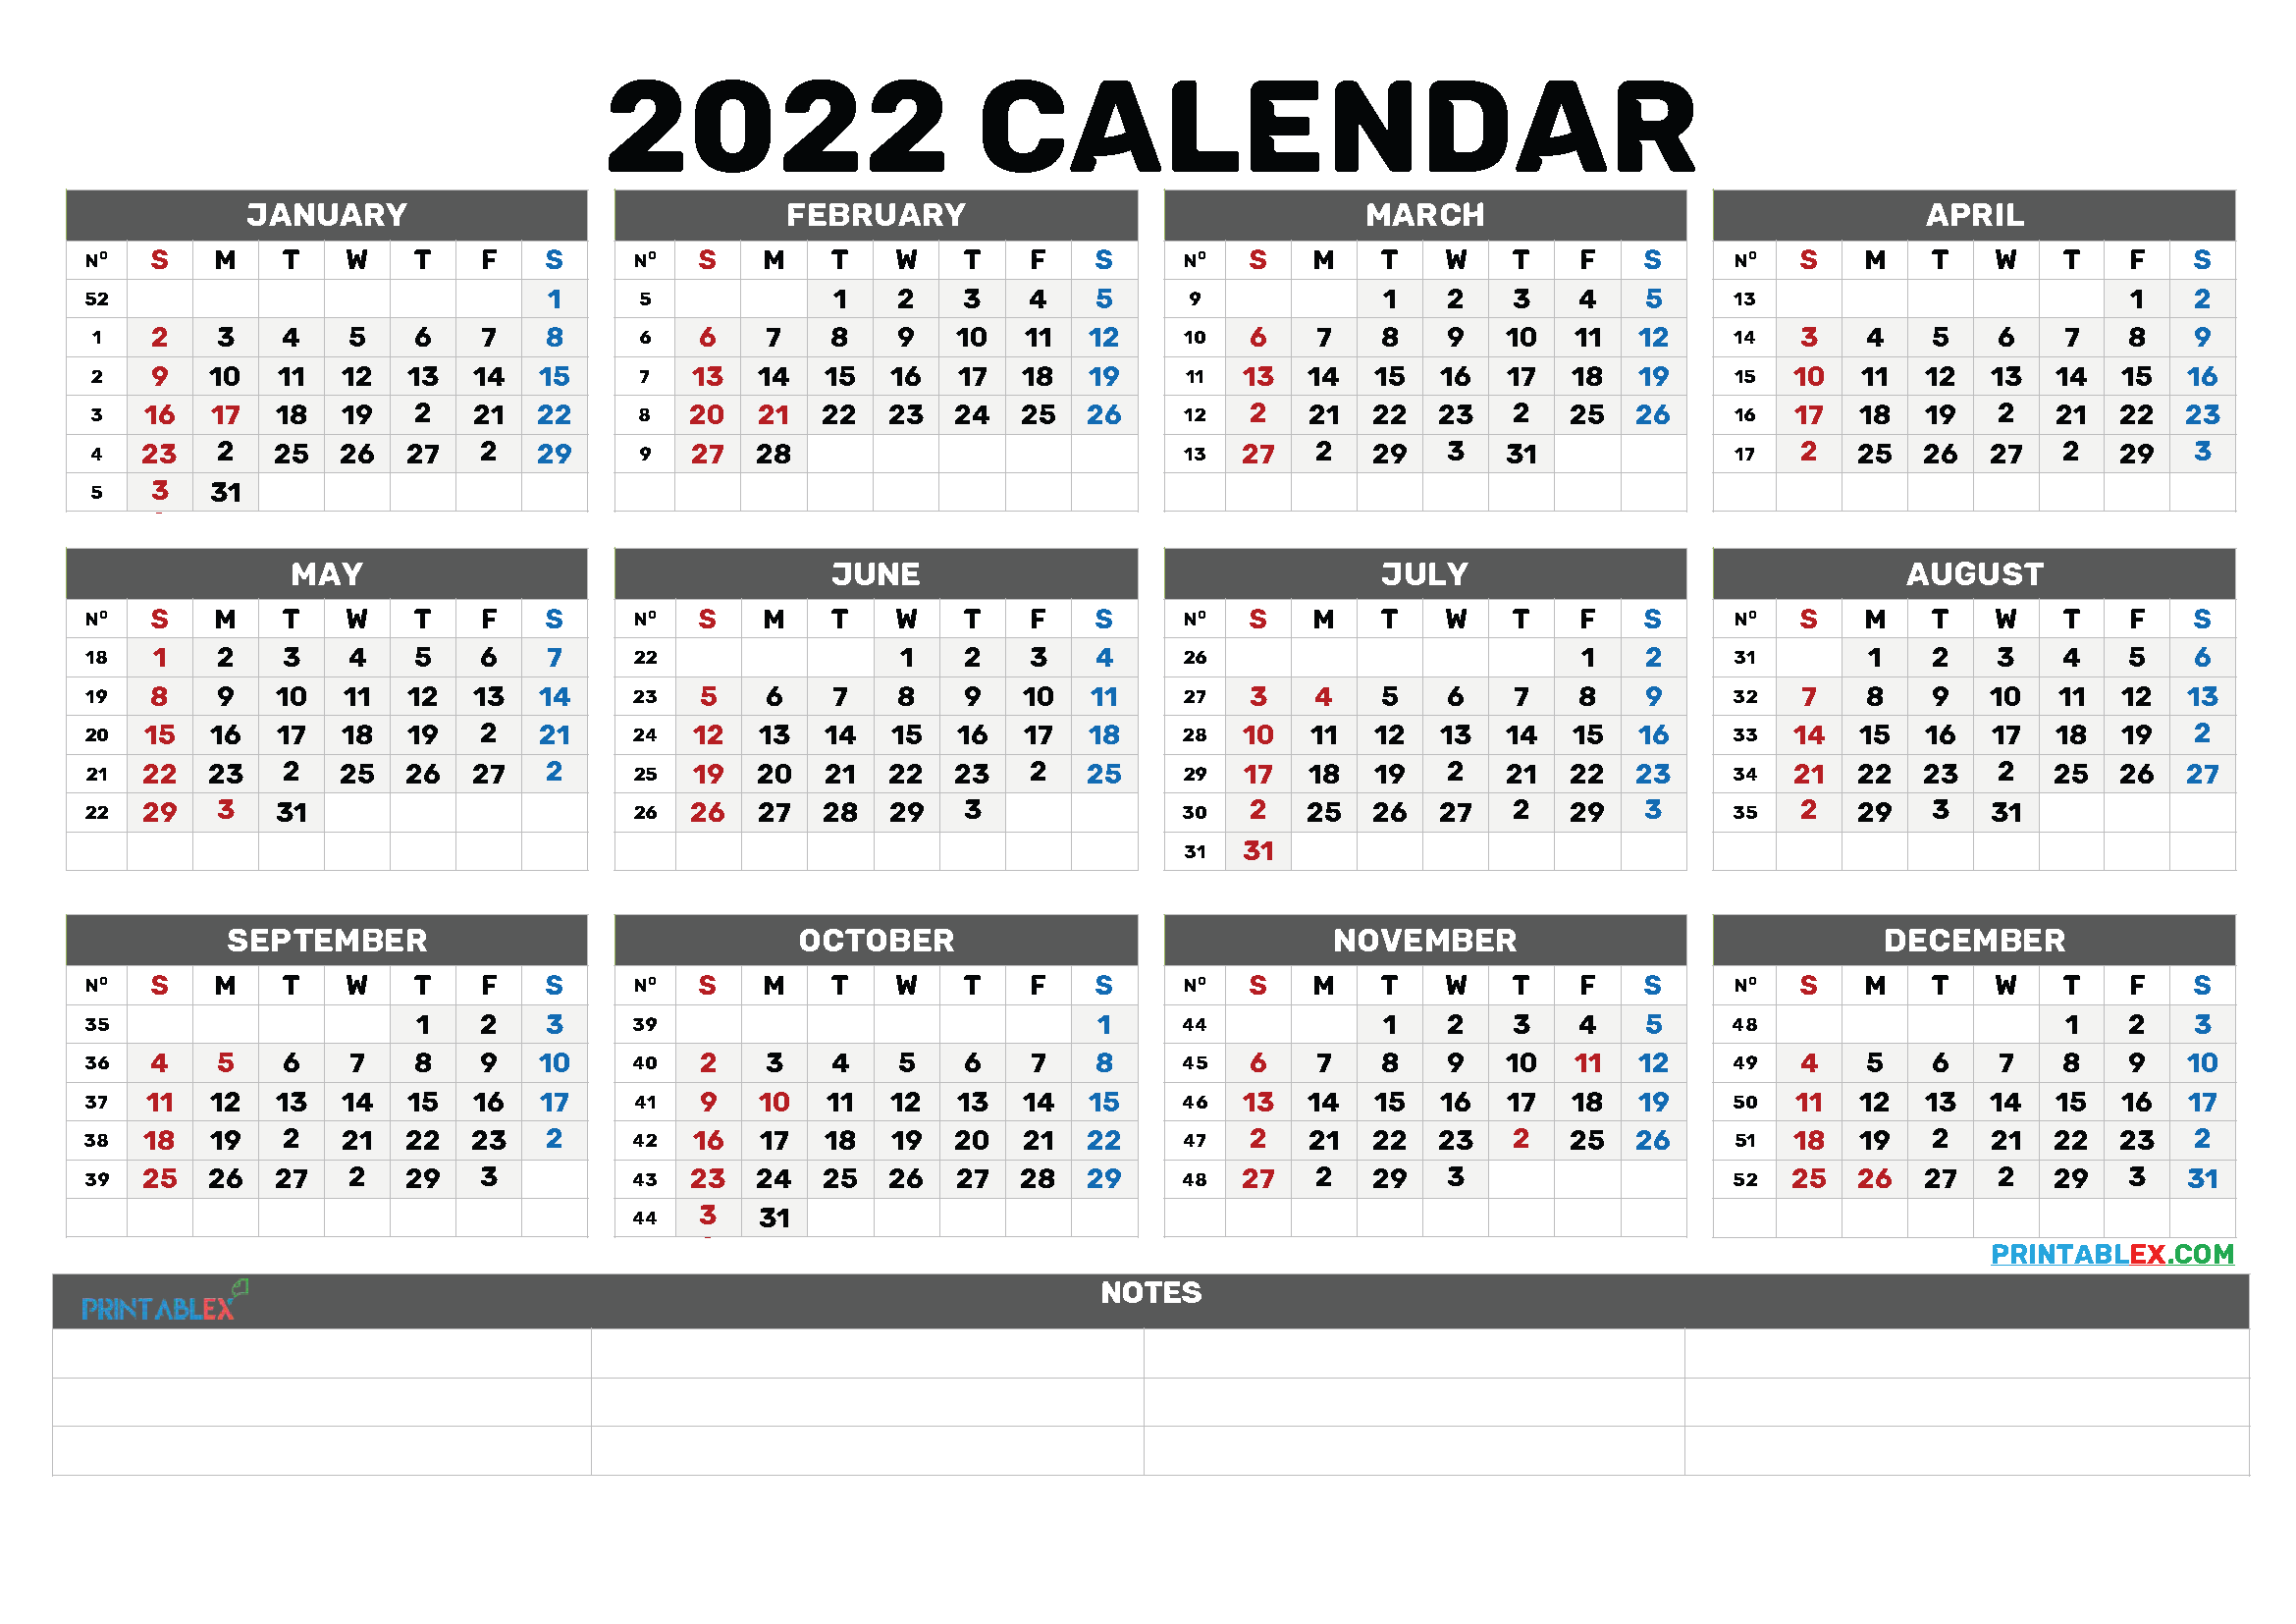 Printable 2022 Calendar by Month (Font: maiden)